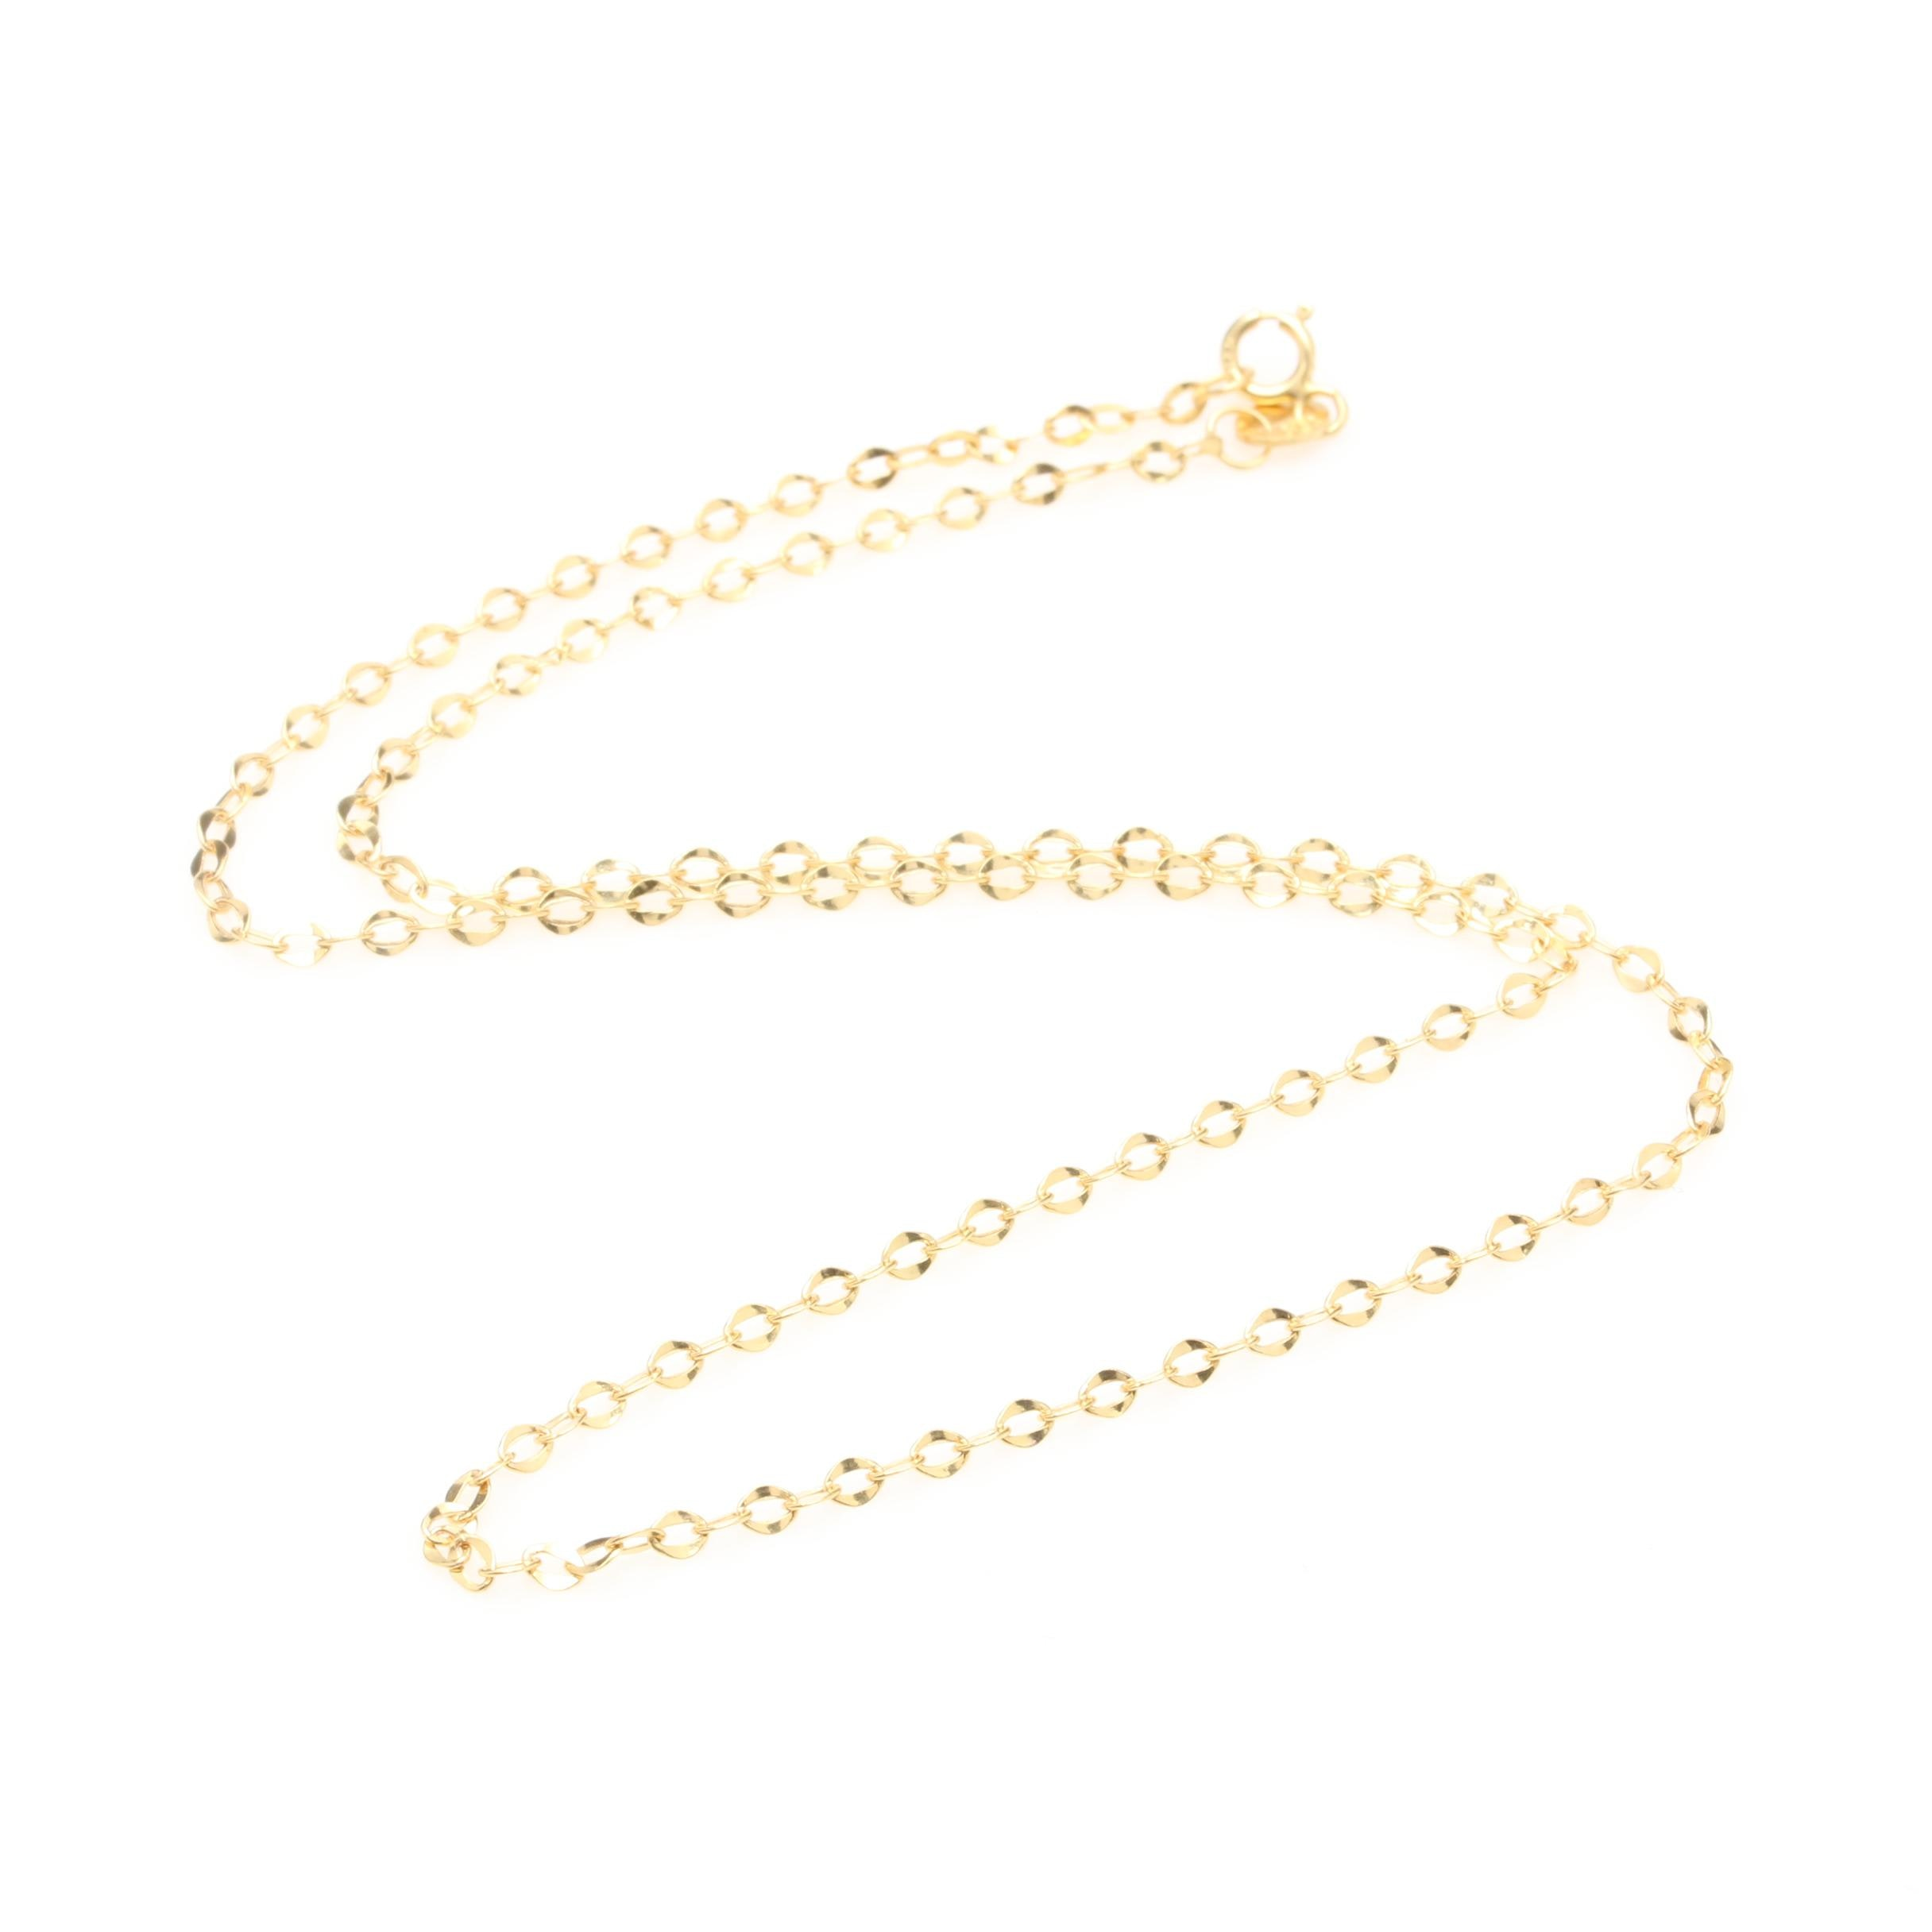 14K Yellow Gold Flat Link Cable Chain Necklace